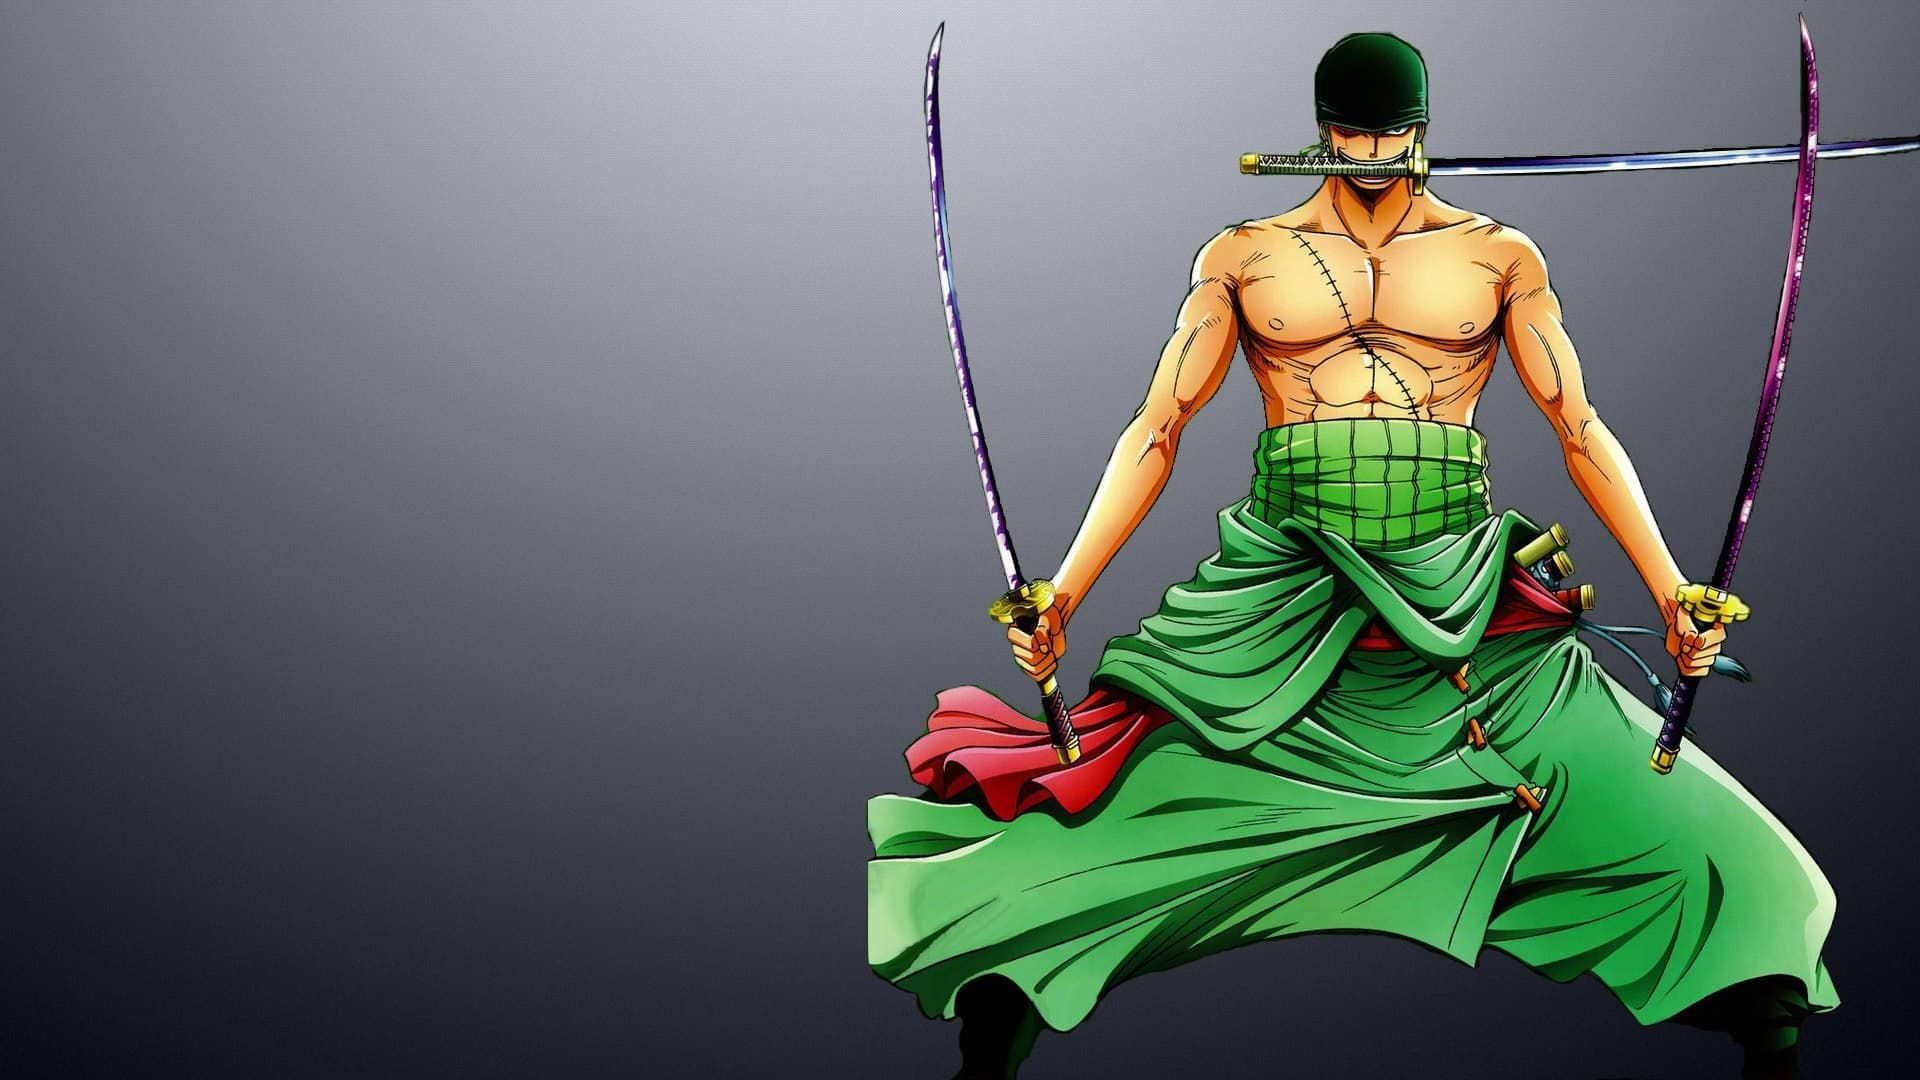 Turn gifs, videos, and other content into wallpapers. 1920x1080 Zoro Roronoa One Piece Full Hd Wallpaper Zoro One Piece Zoro One Piece Figure